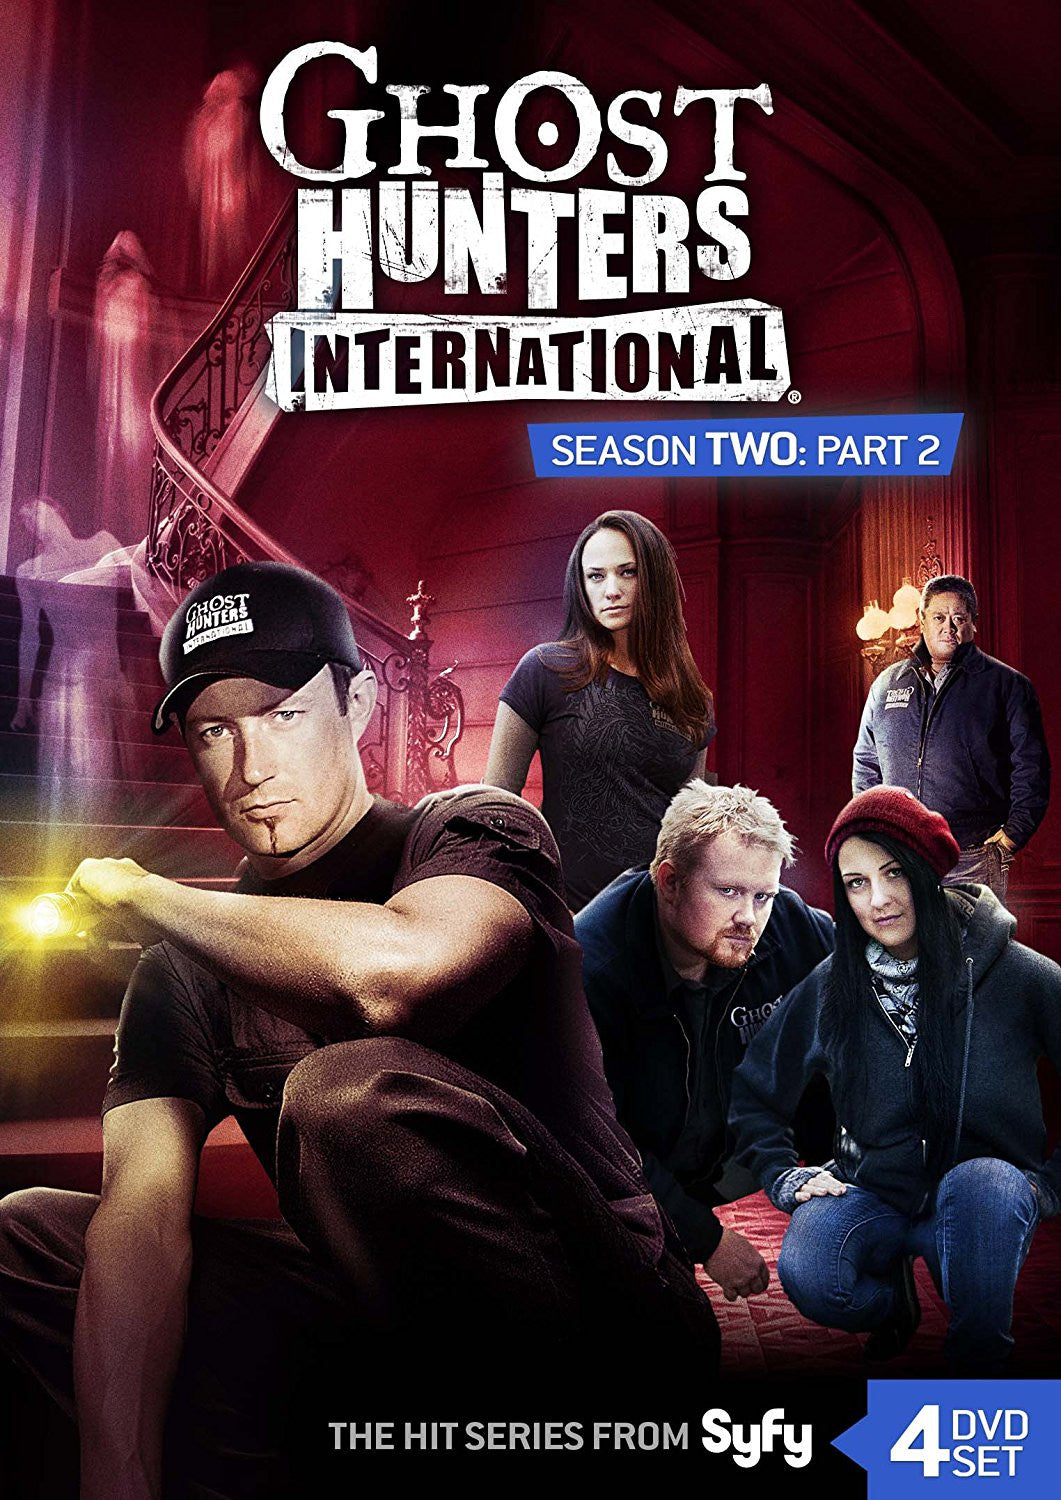 Ghost Hunters International Season 2 Part 2 Collector's DVD Set